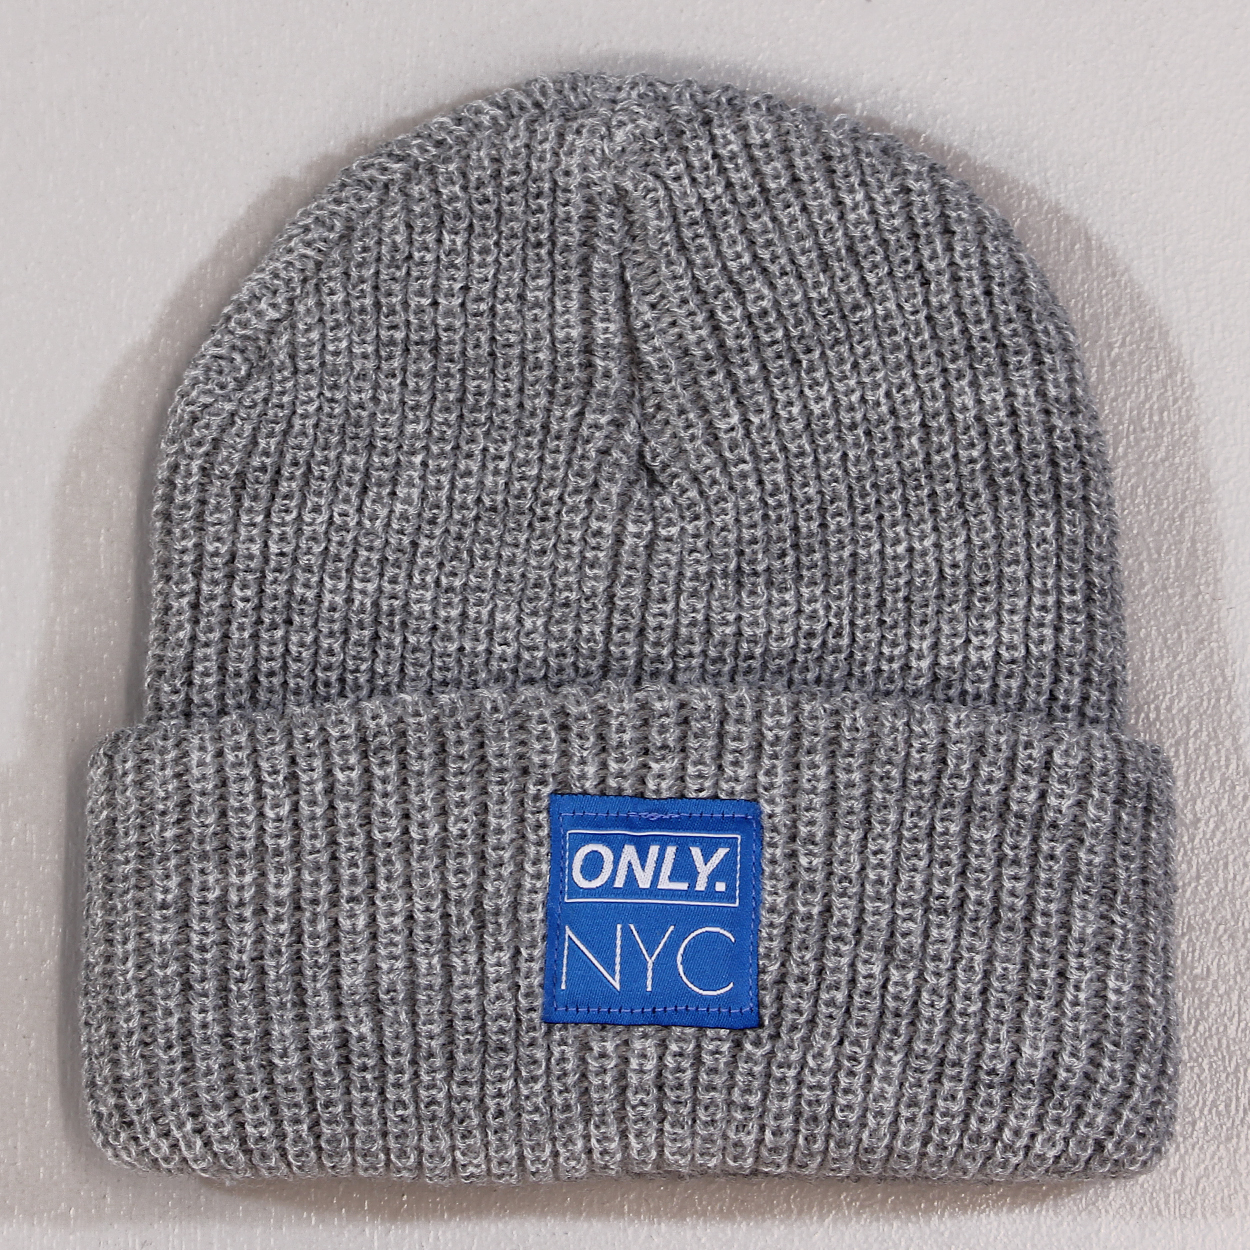 c61af23f43c Only New York Mens Summit Woven Acrylic Winter Beanie Hat £11.40